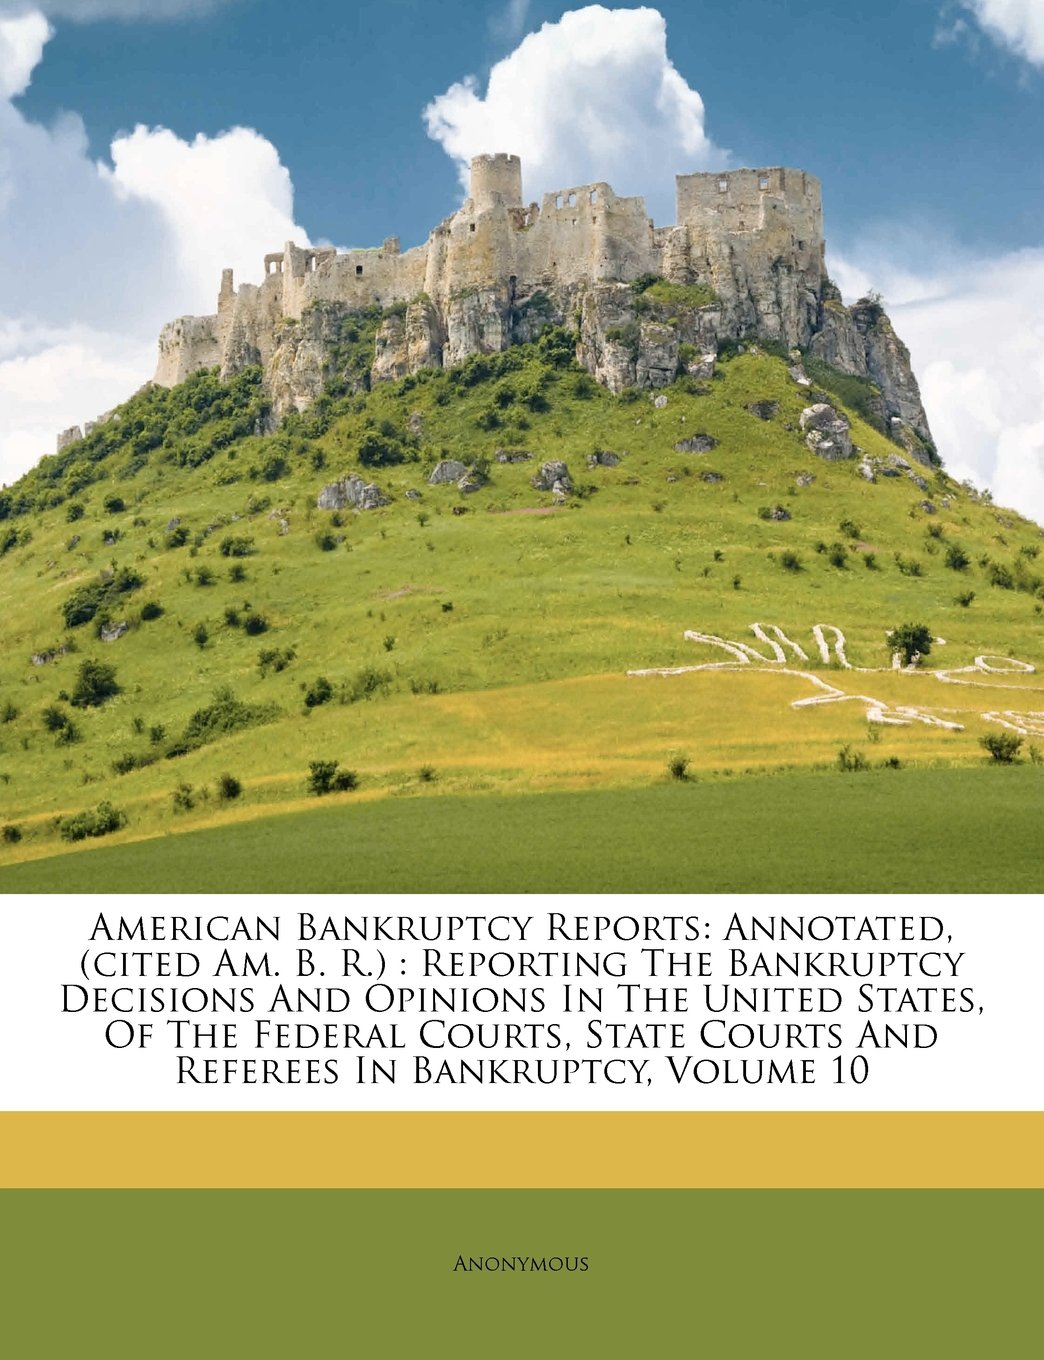 American Bankruptcy Reports: Annotated, (cited Am. B. R.) : Reporting The Bankruptcy Decisions And Opinions In The United States, Of The Federal ... Courts And Referees In Bankruptcy, Volume 10 PDF